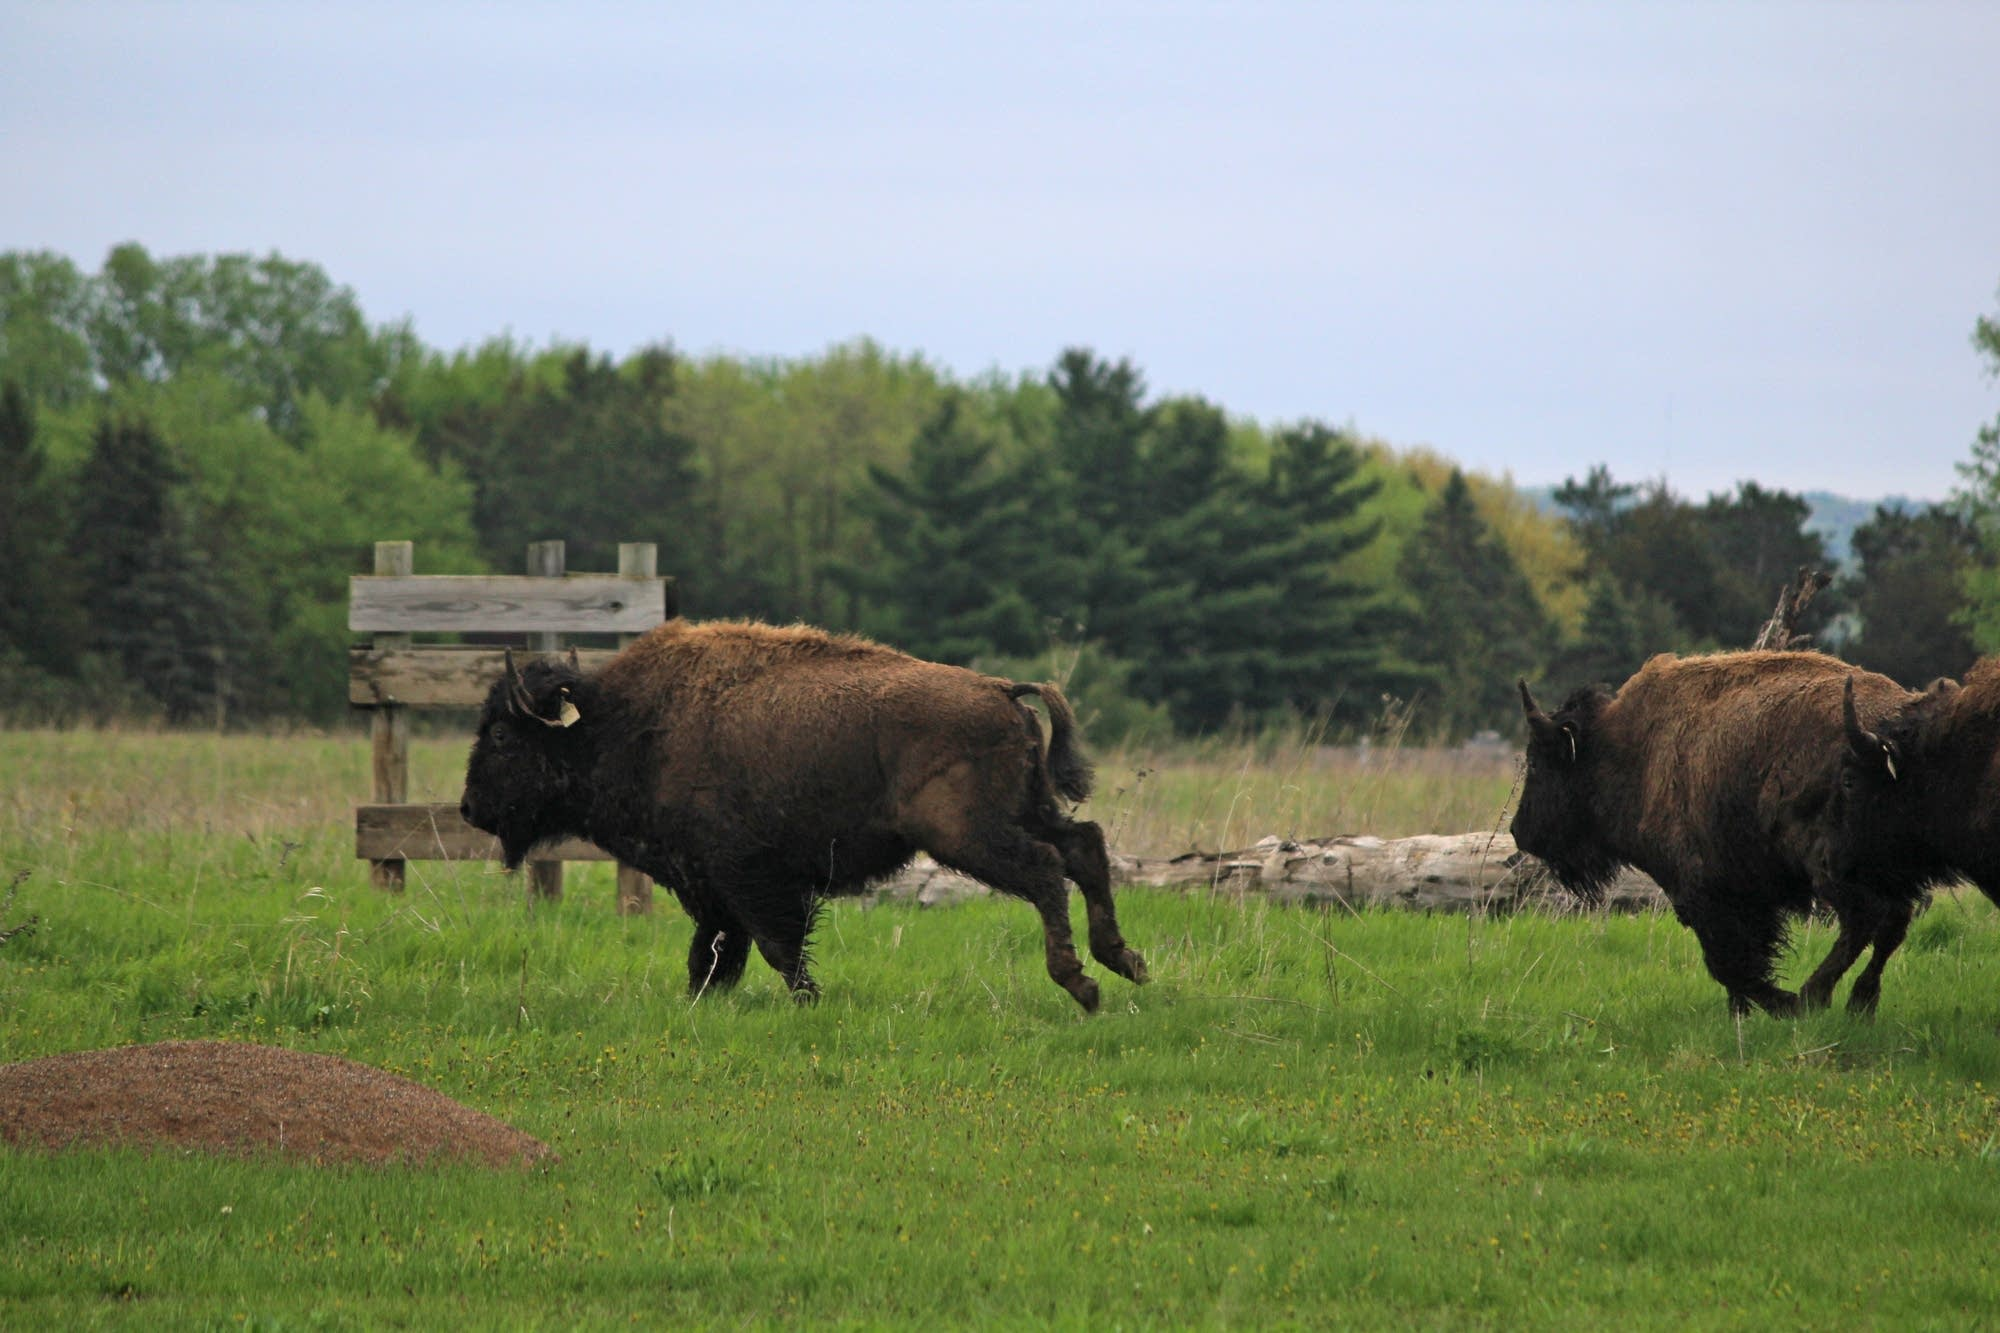 The bison released ranged from 400 to 600 pounds